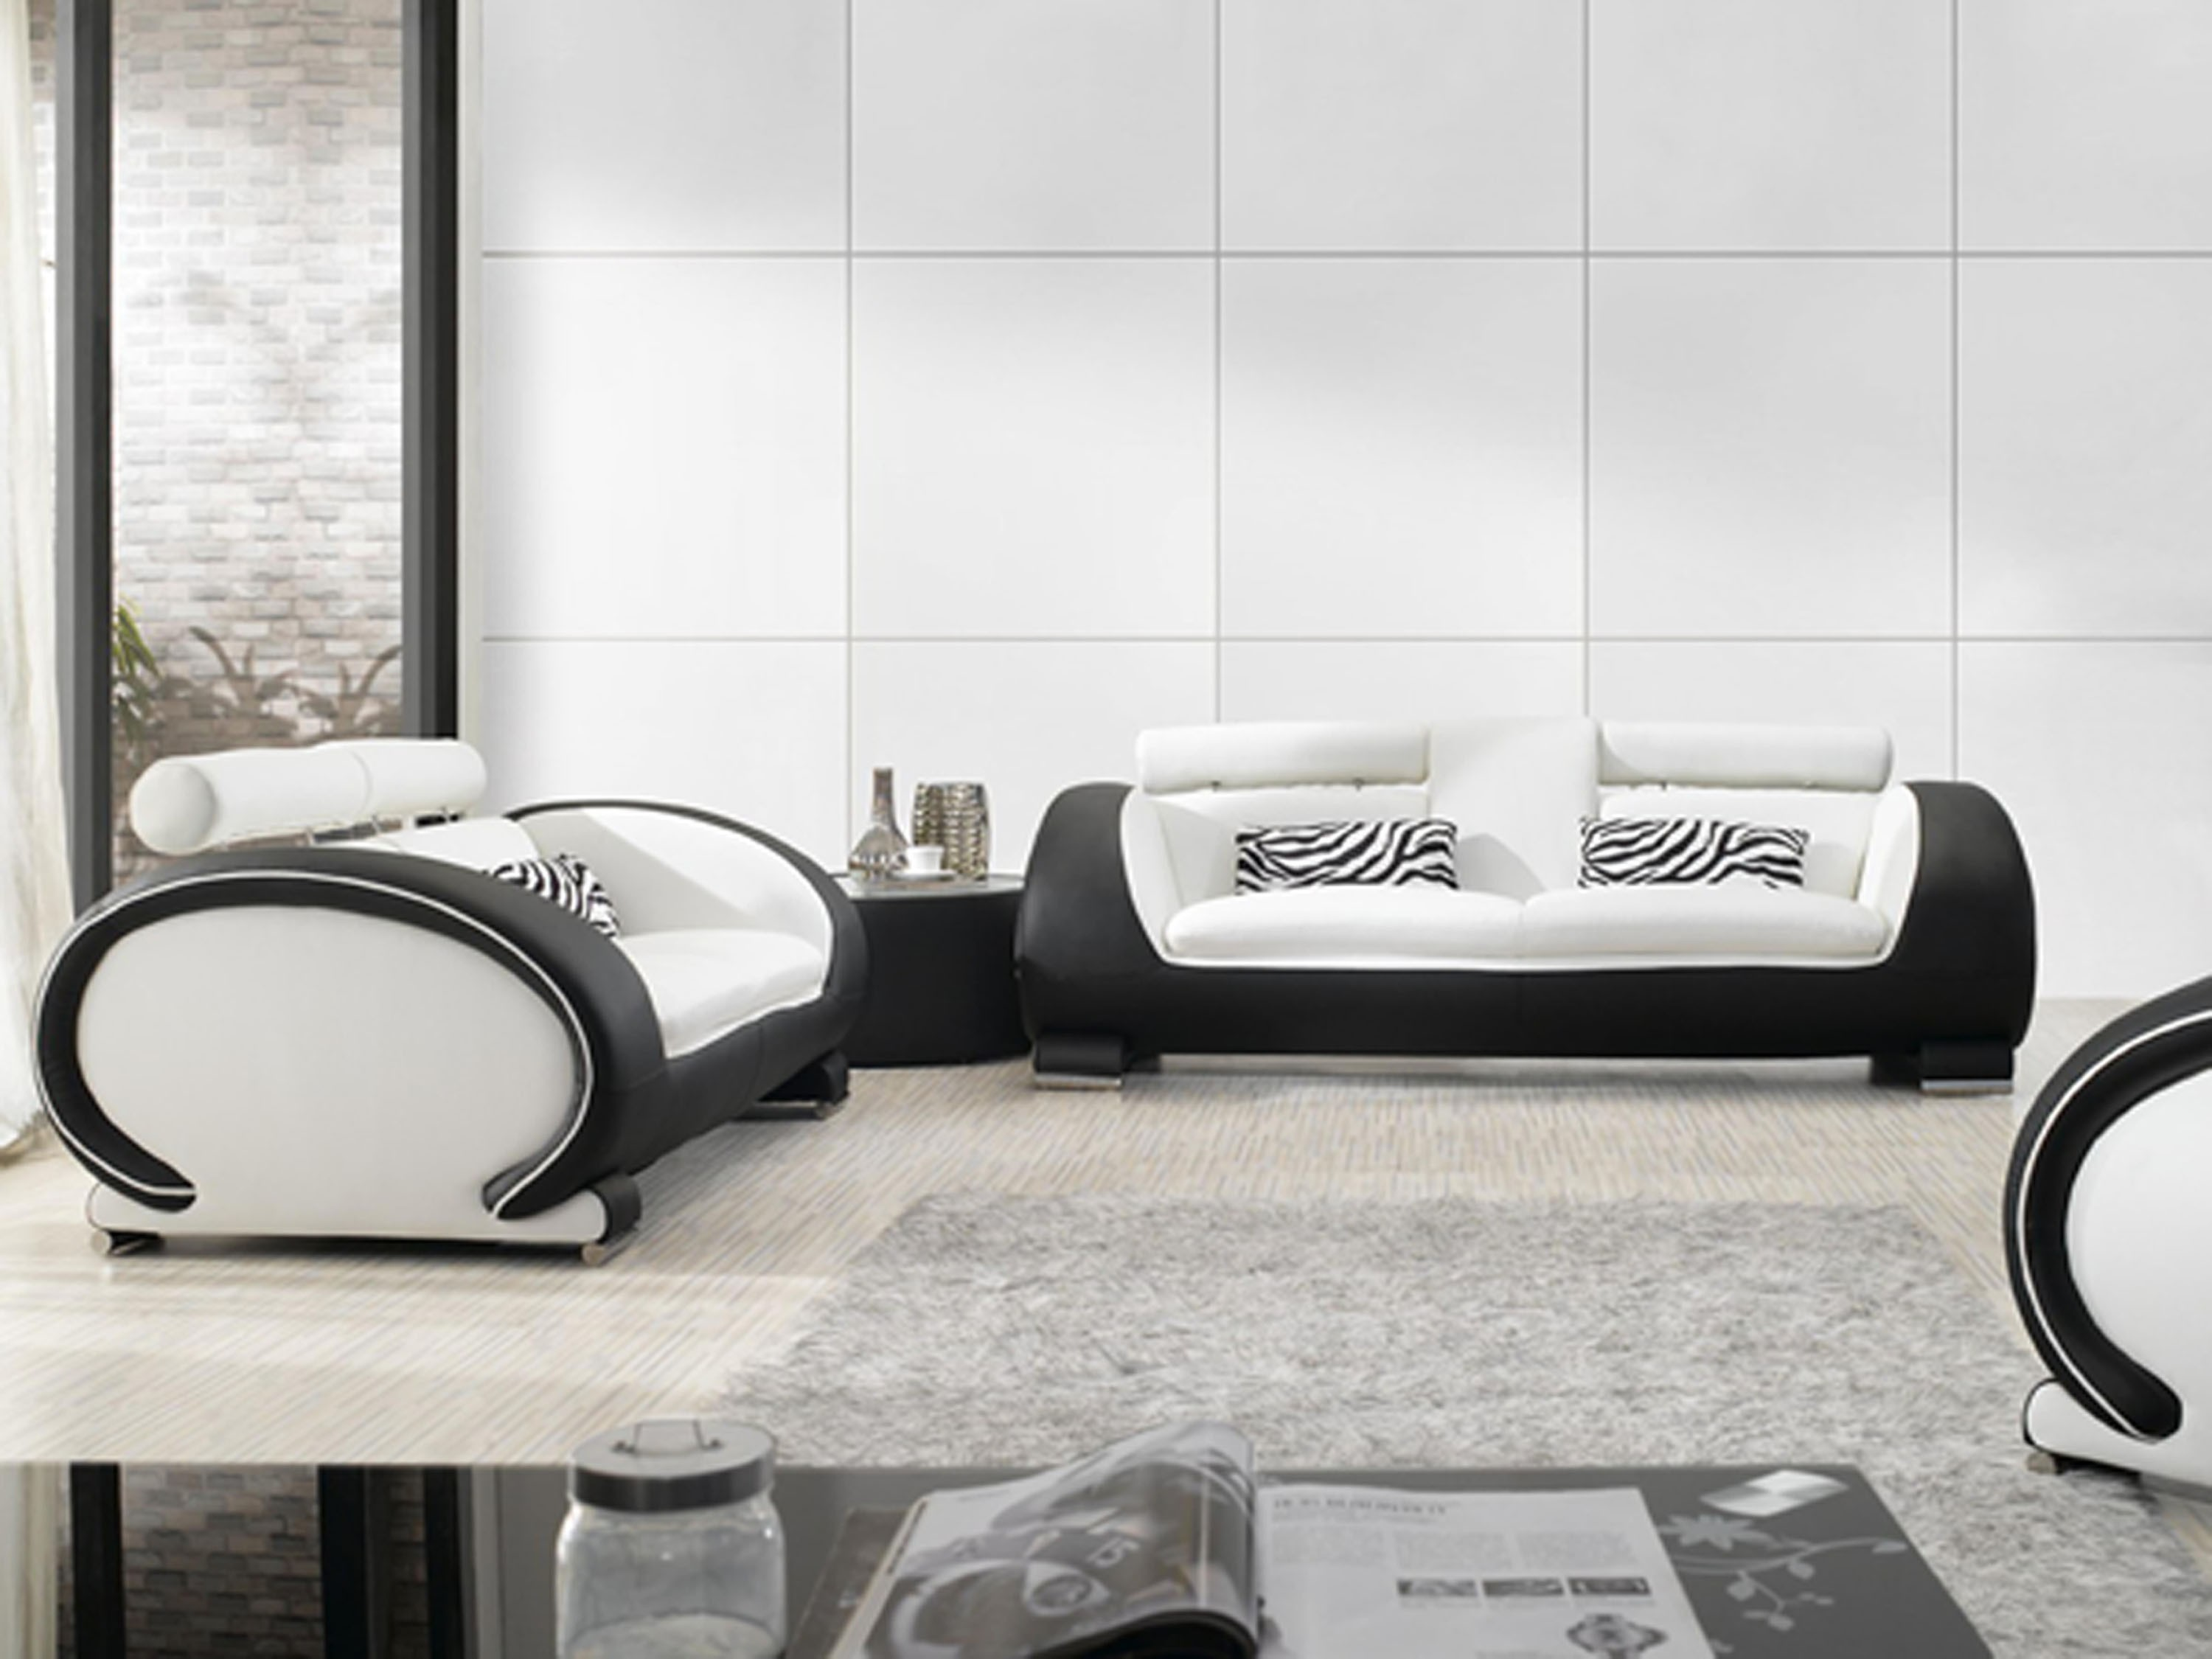 25 Black and White Glamour Decor Inspirations 25